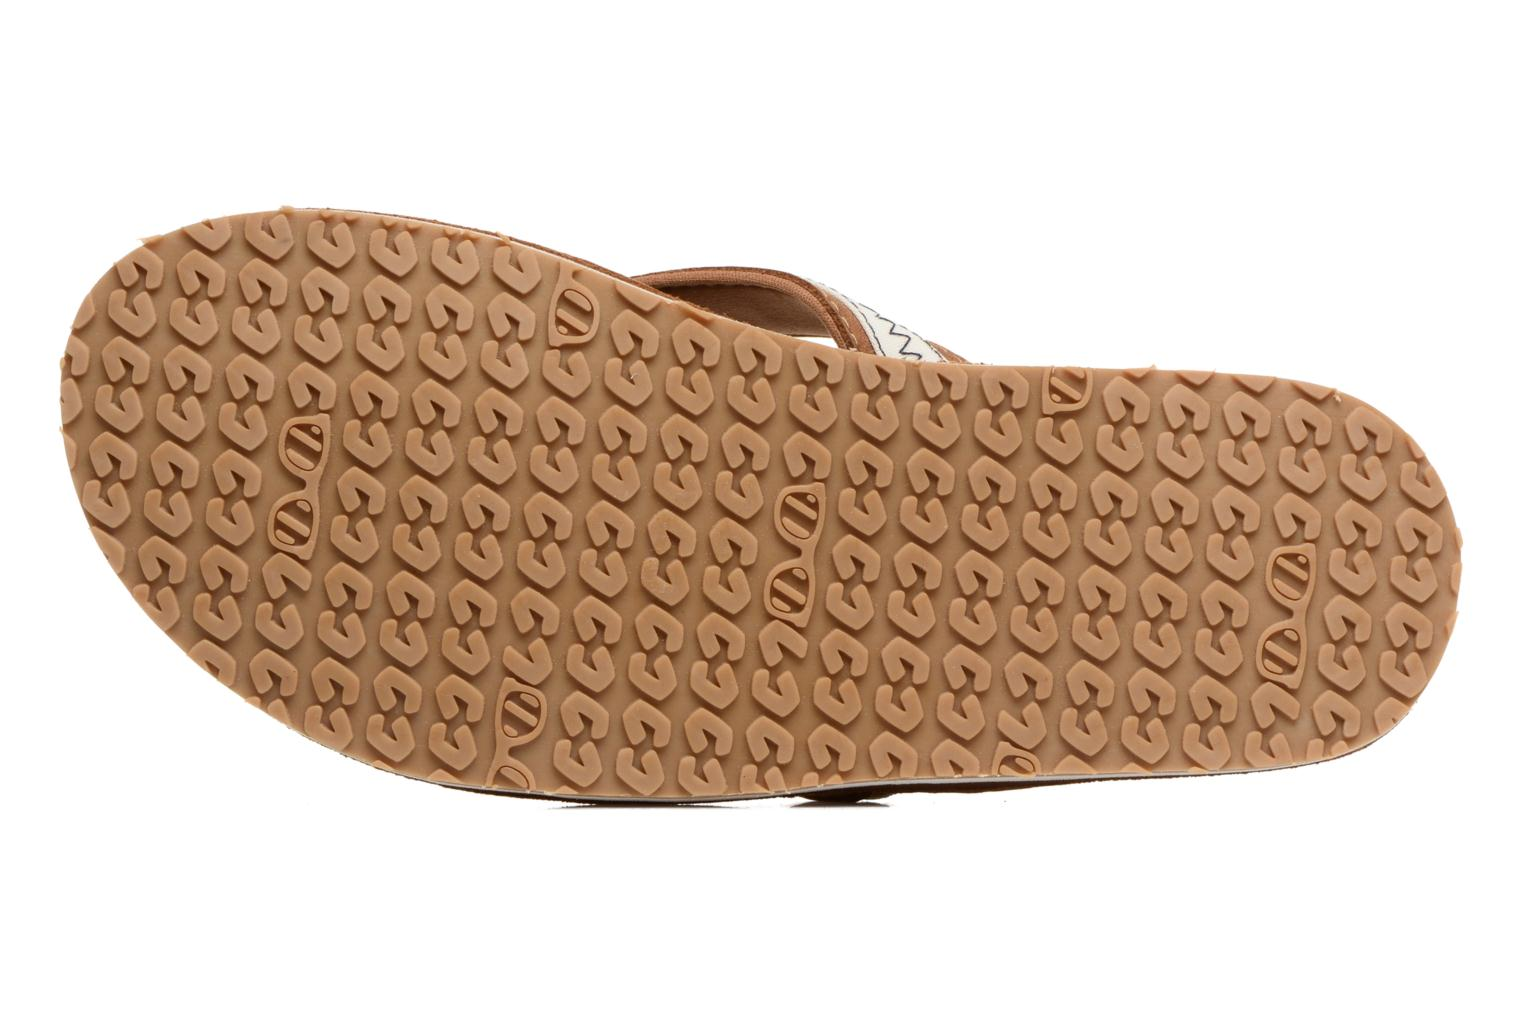 Sand 2.0 - 727 Tobacco Brown